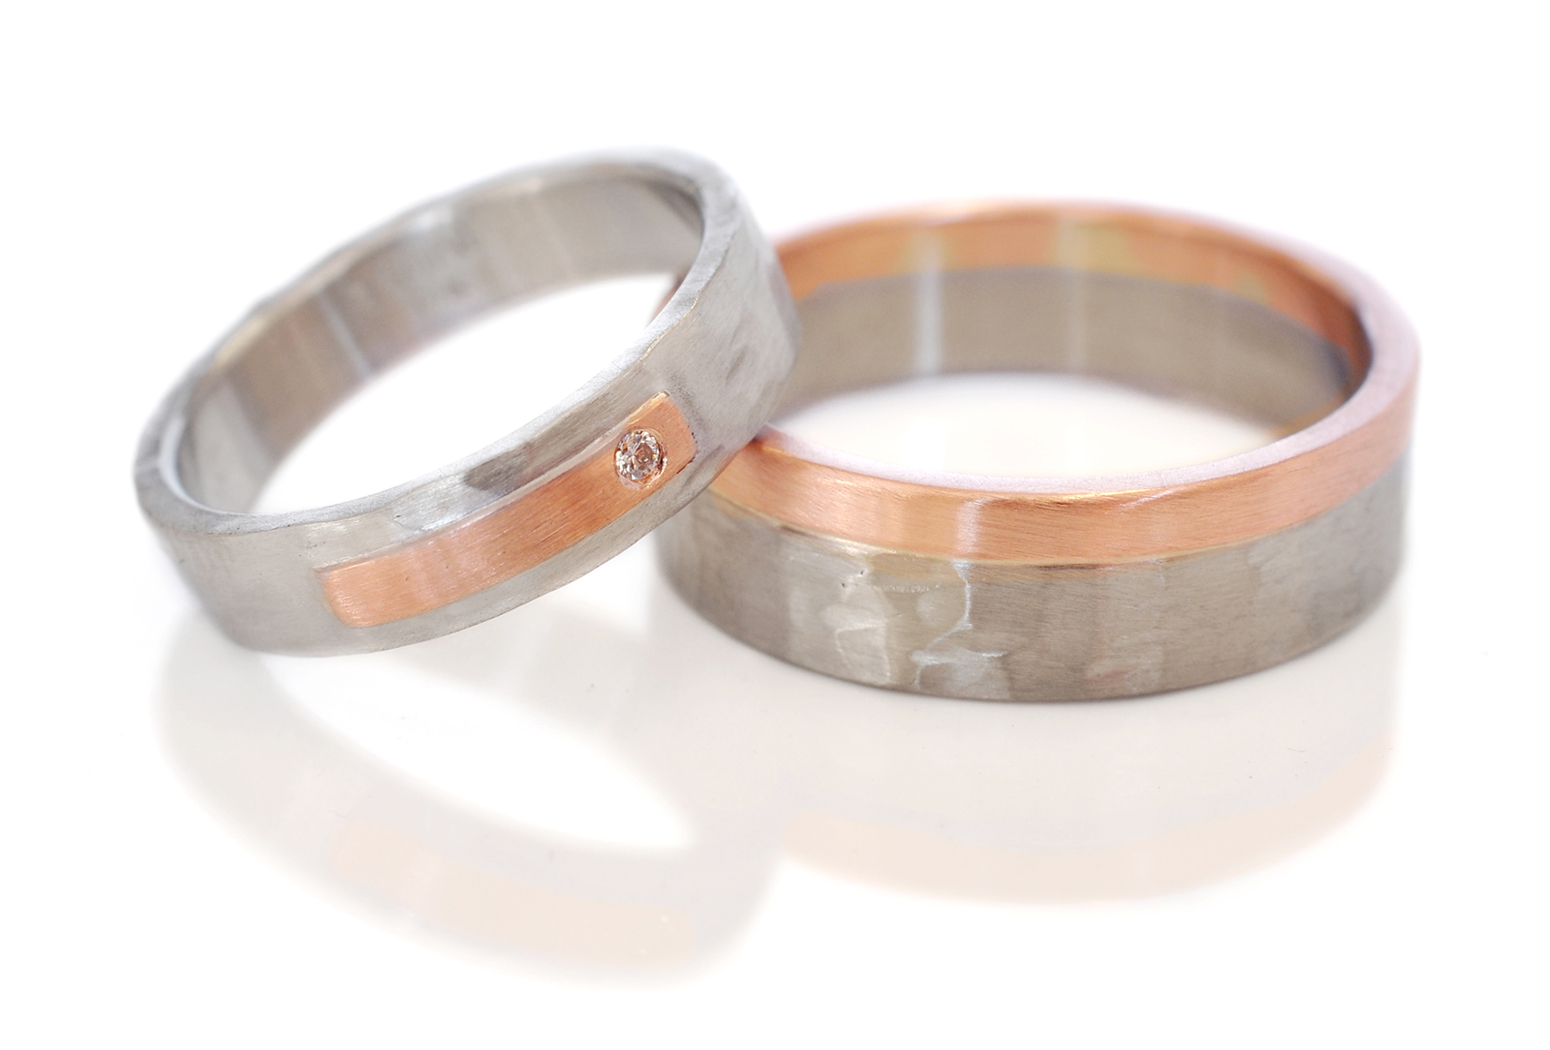 Nick and Katie chose coordinating mixed metal wedding bands with out being too matchy. Palladium and 14k red gold with the random hammered finish.